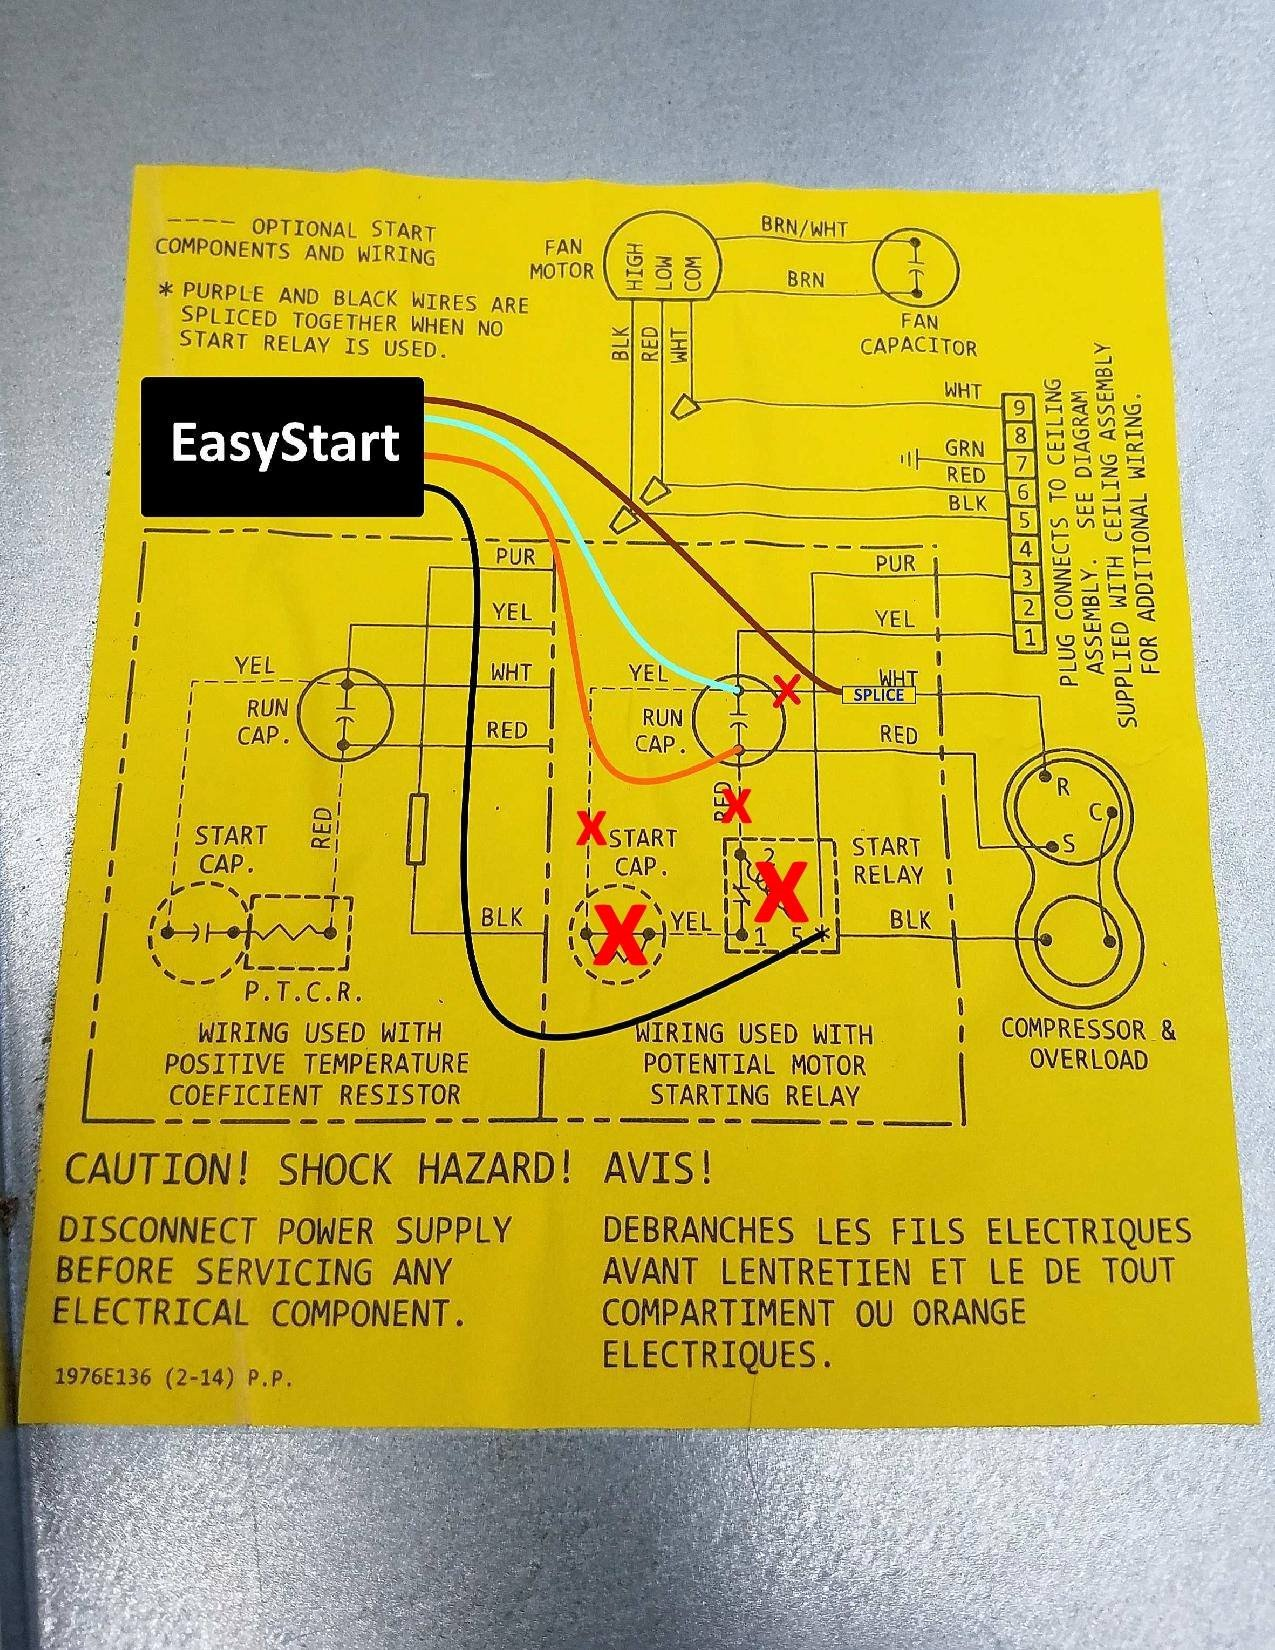 Rv Easystart Soft Starter Wiring Diagrams Resource Page Micro Air Solenoid Diagram In Addition On Meke Coleman Mach 1 364